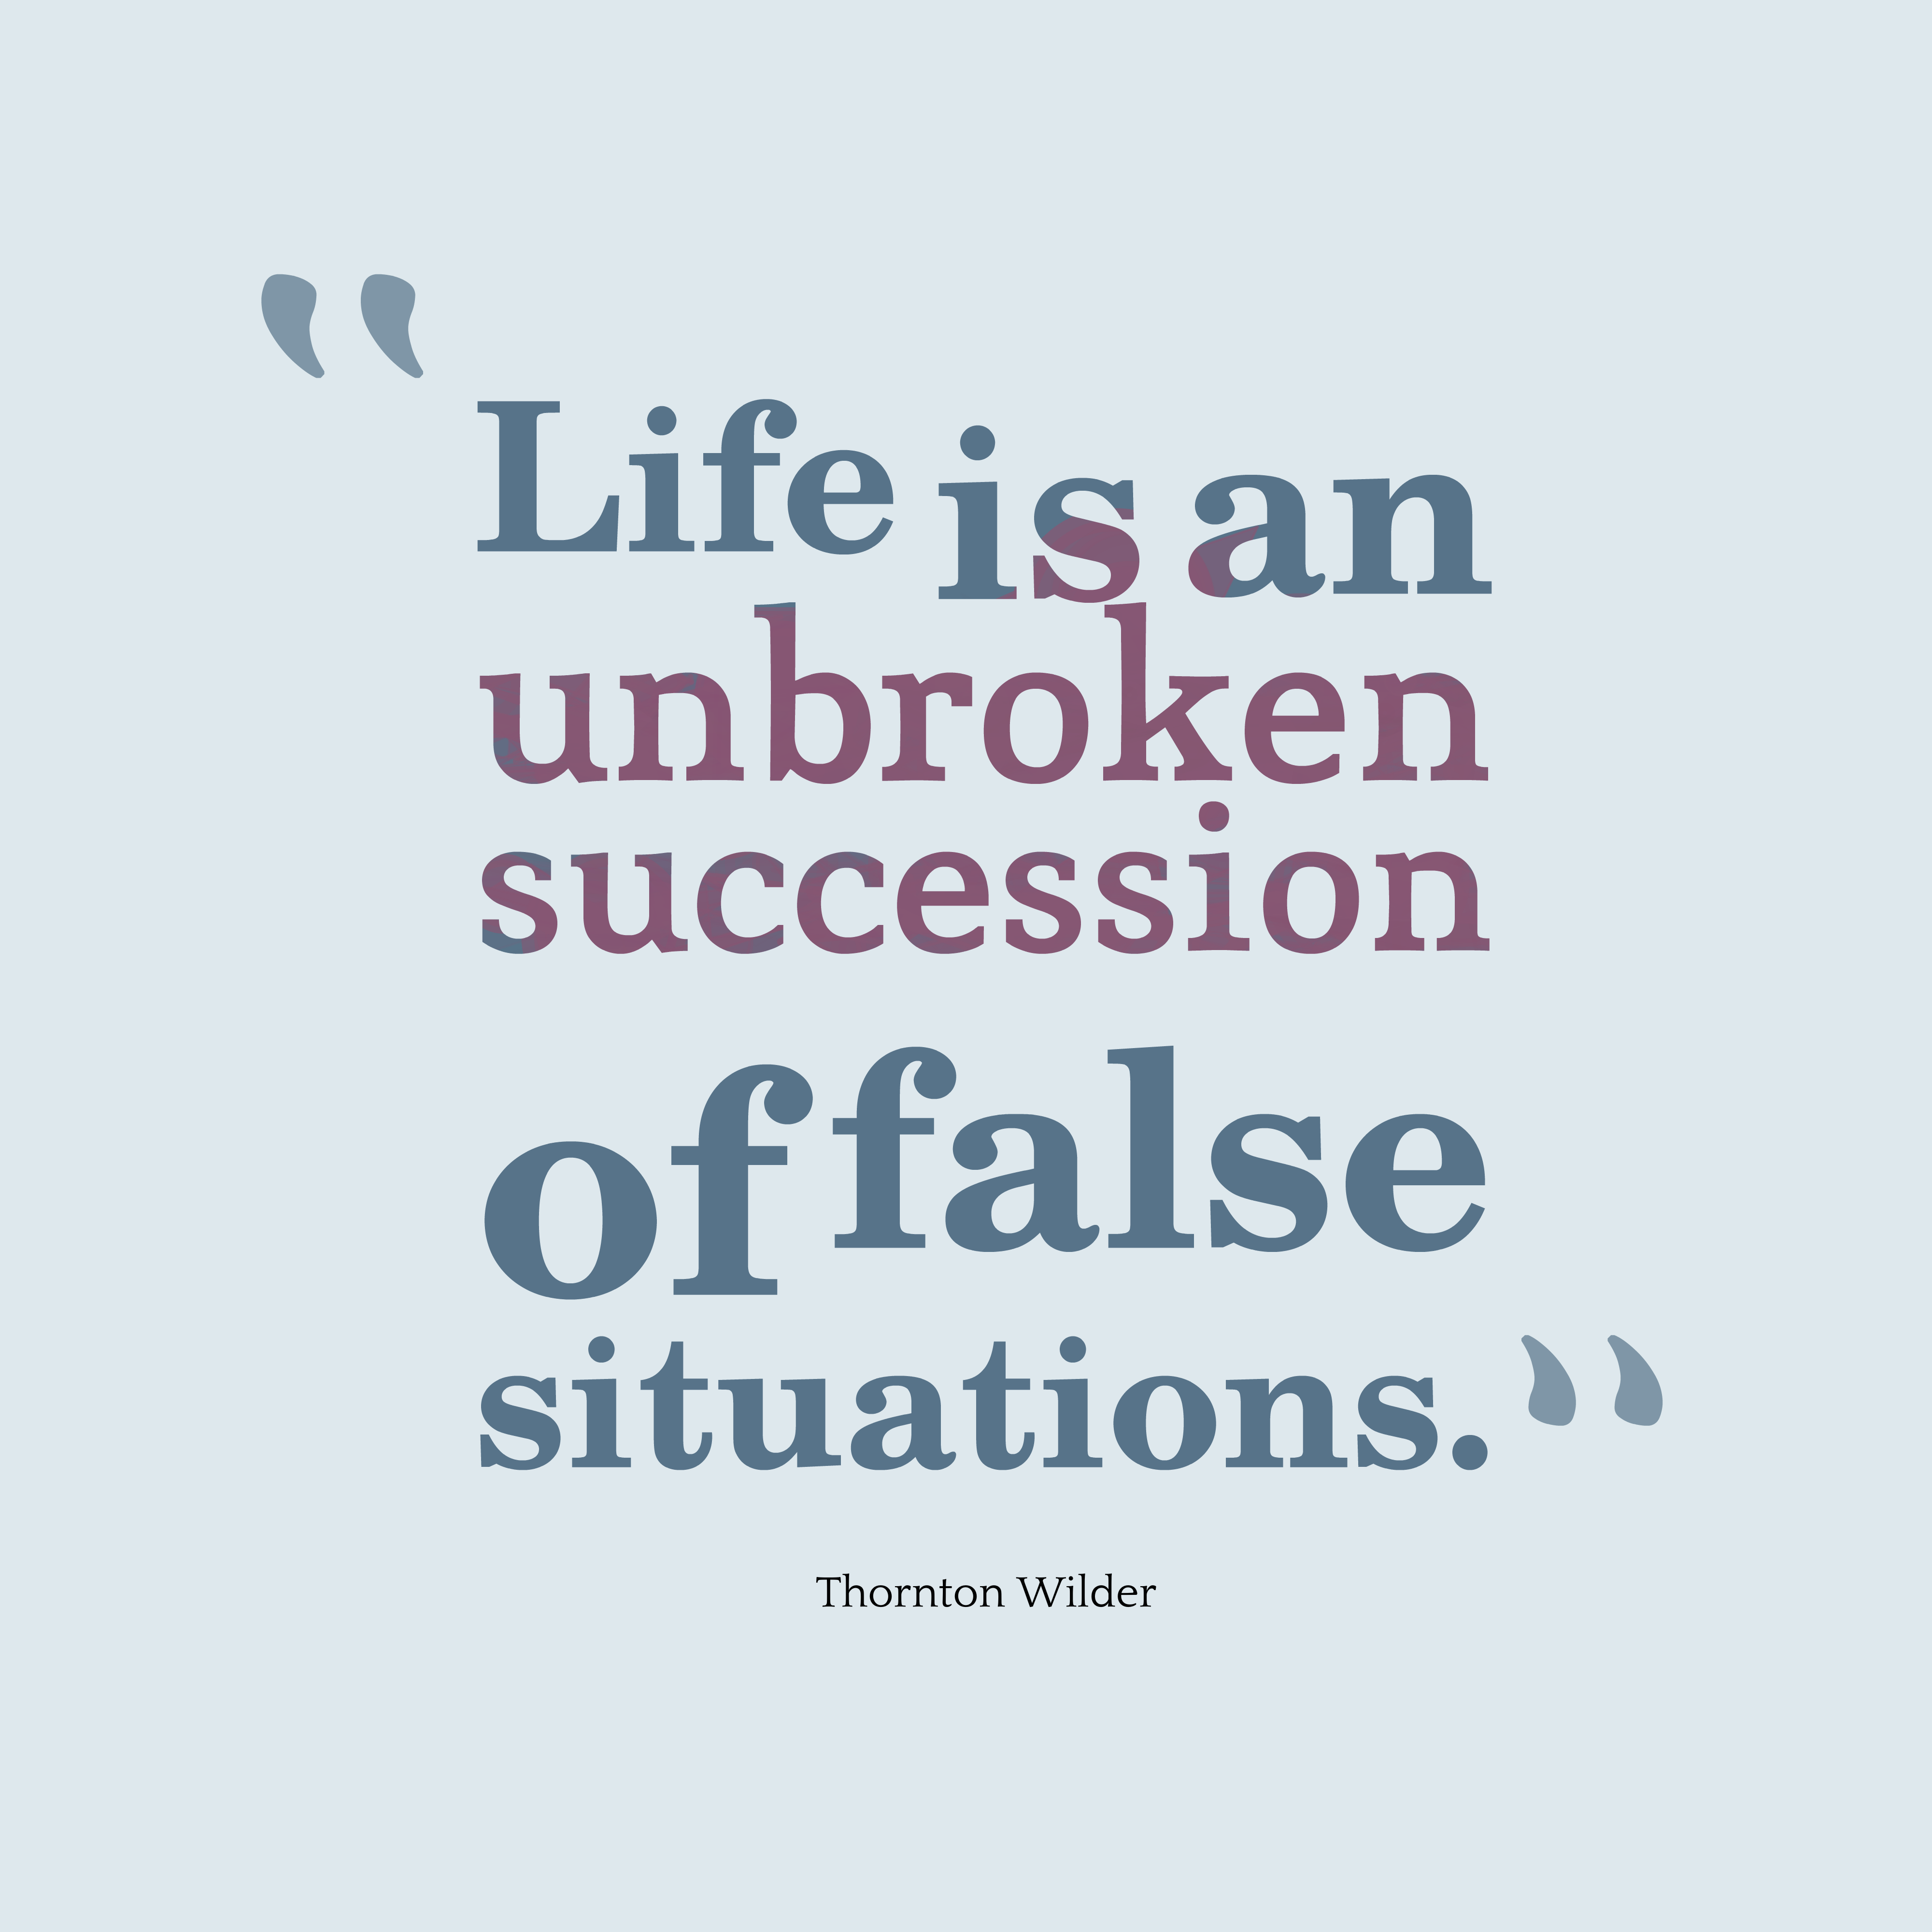 Unbroken Quotes Quotesgram. Famous Quotes You Should Know. Book Quotes Disappointment. Short Quotes Nietzsche. Good Quotes About Being Happy. Short Quotes For Girls. Girl Quotes Dumbledore At Funeral. Miss You Quotes Pictures. Friday Quotes Video